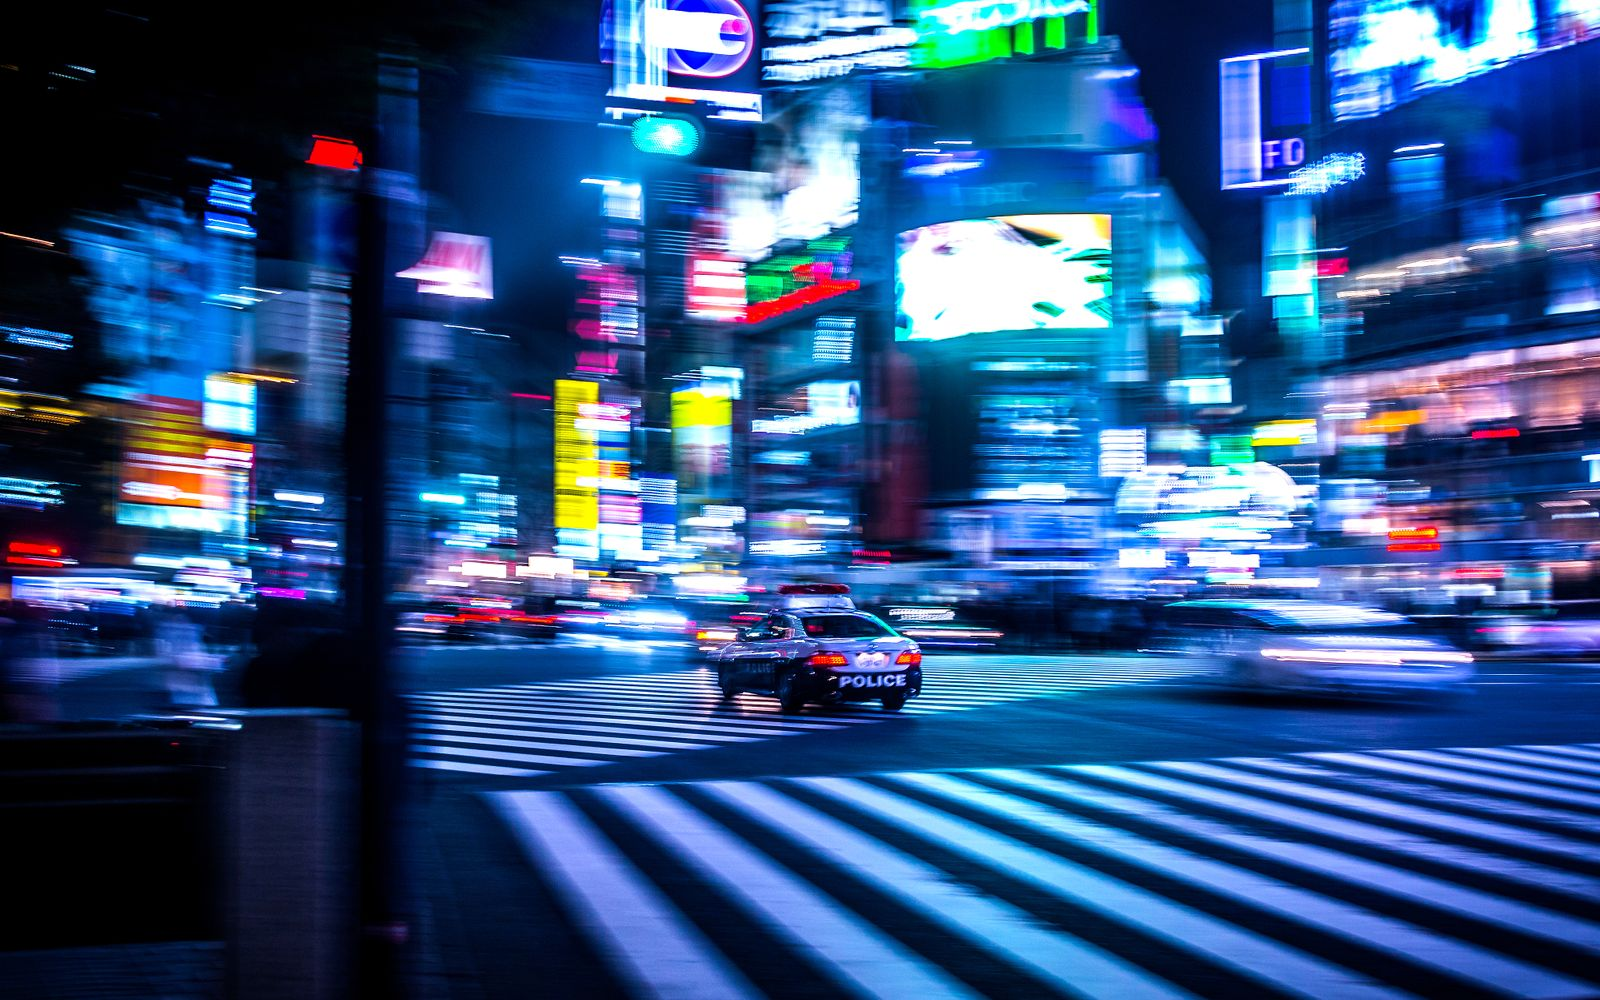 Blurred Motion Of Cars On Road In Illuminated City At Night